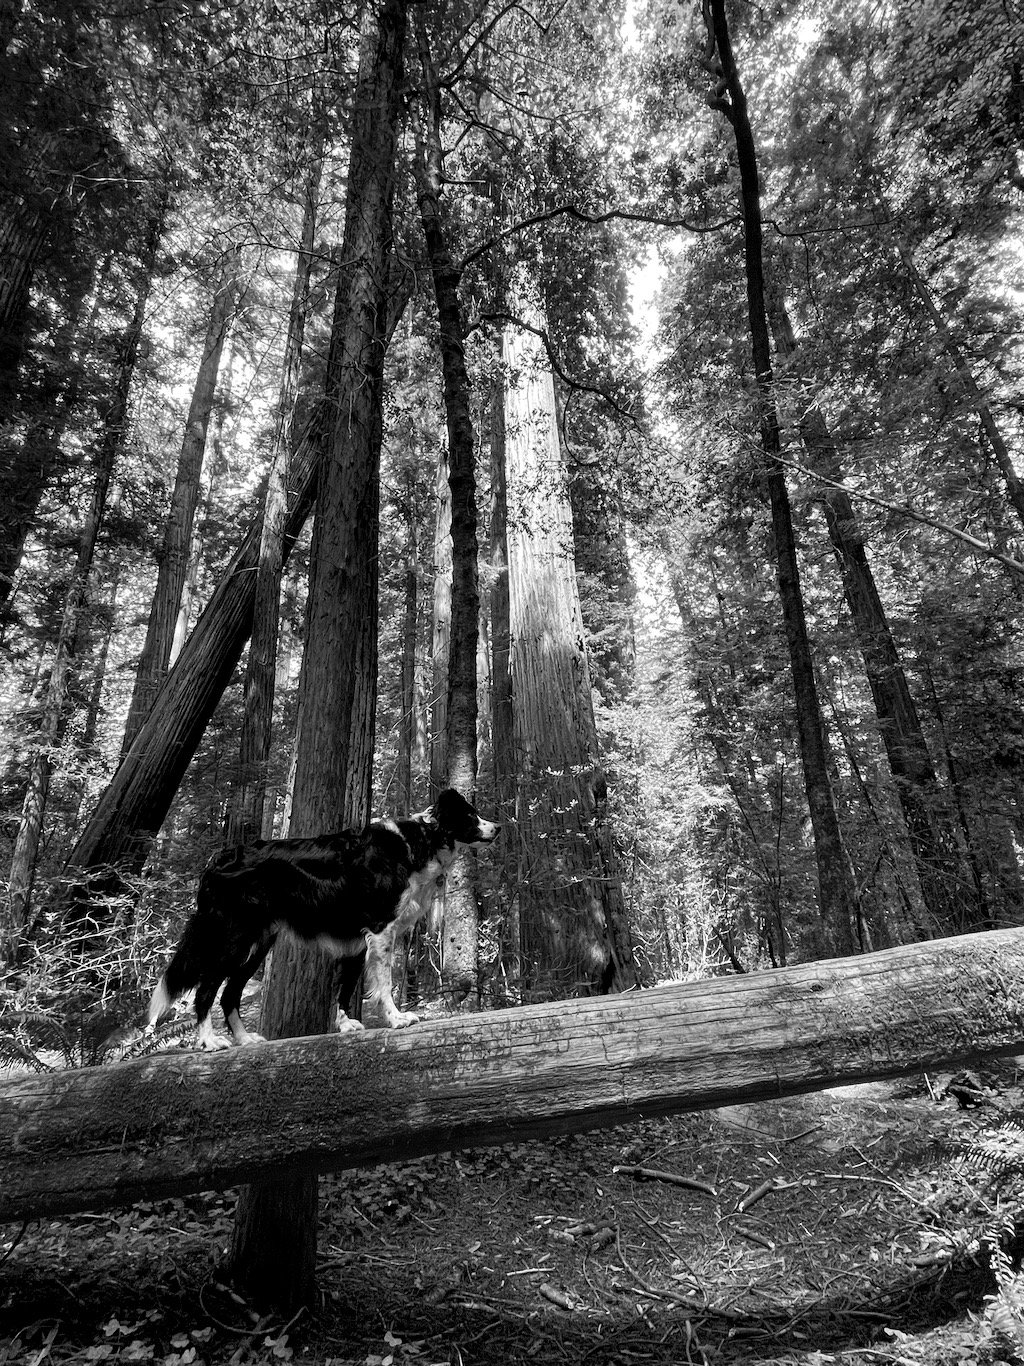 The redwood forest.